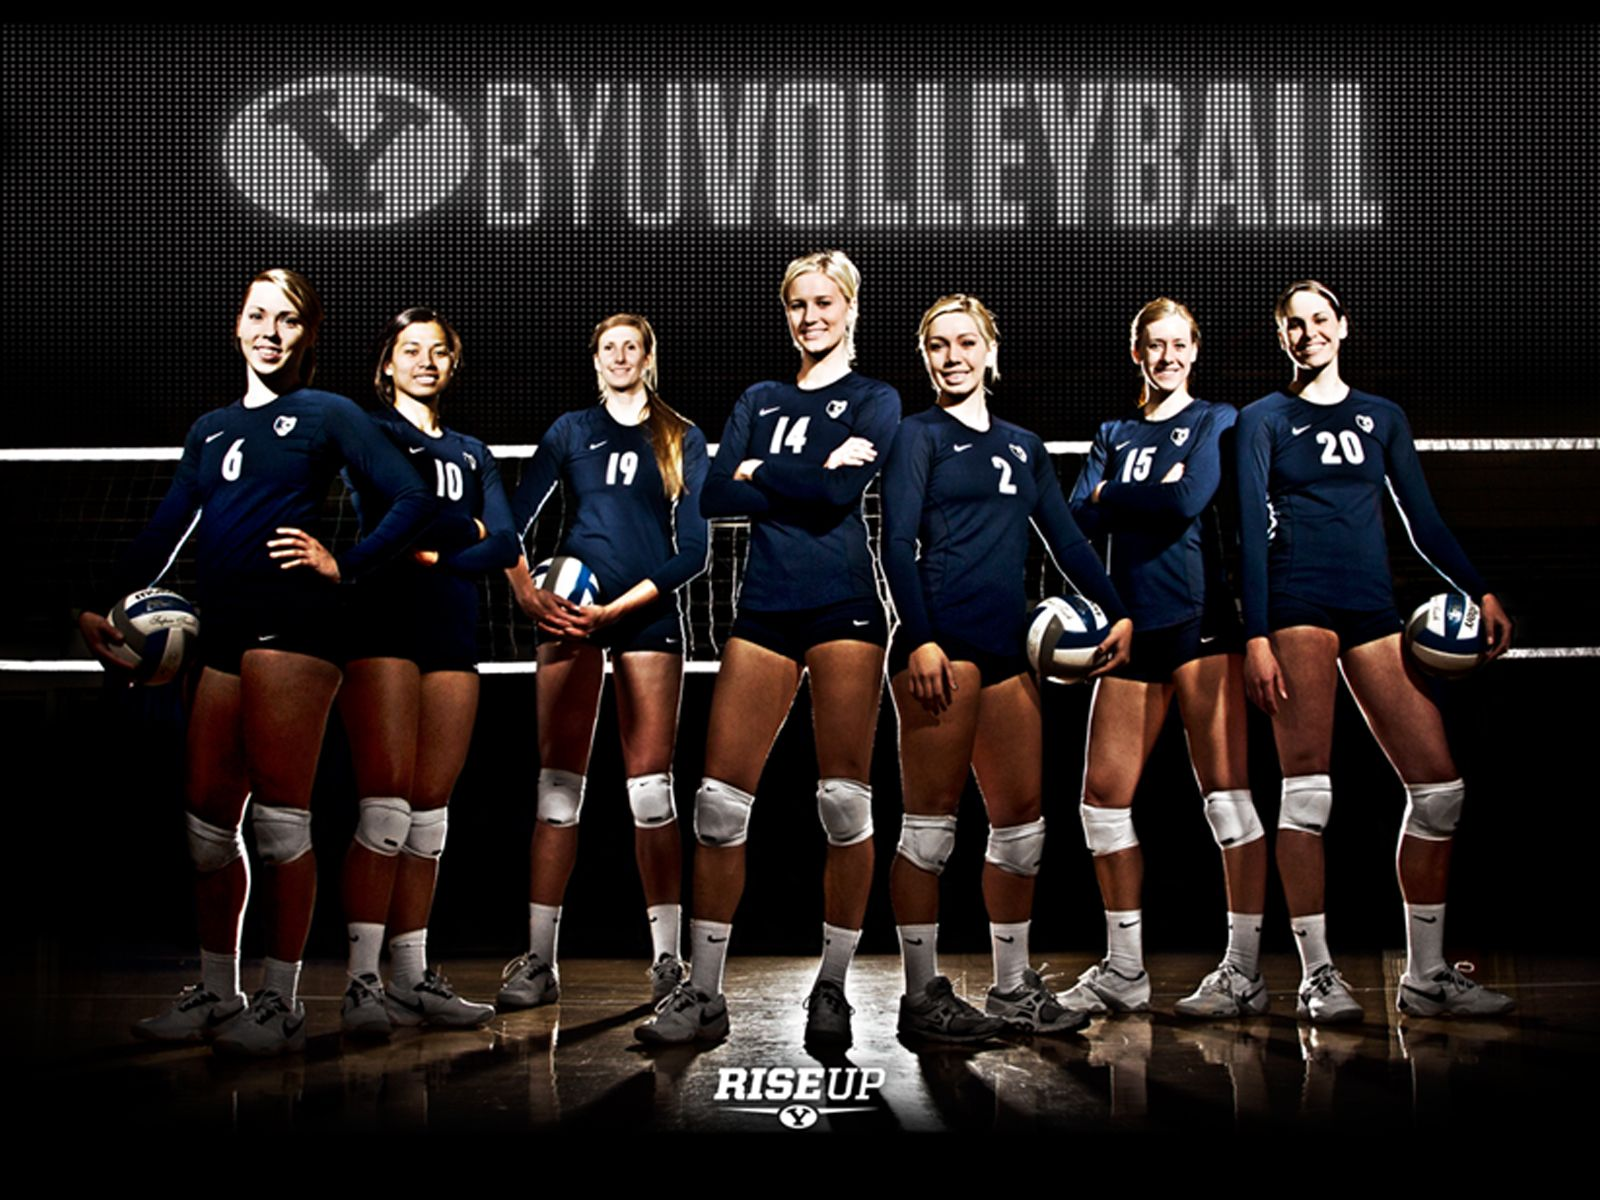 Wallpaper 1600x1200 0 Jpg 1600 1200 Volleyball Photography Volleyball Senior Pictures Volleyball Photos